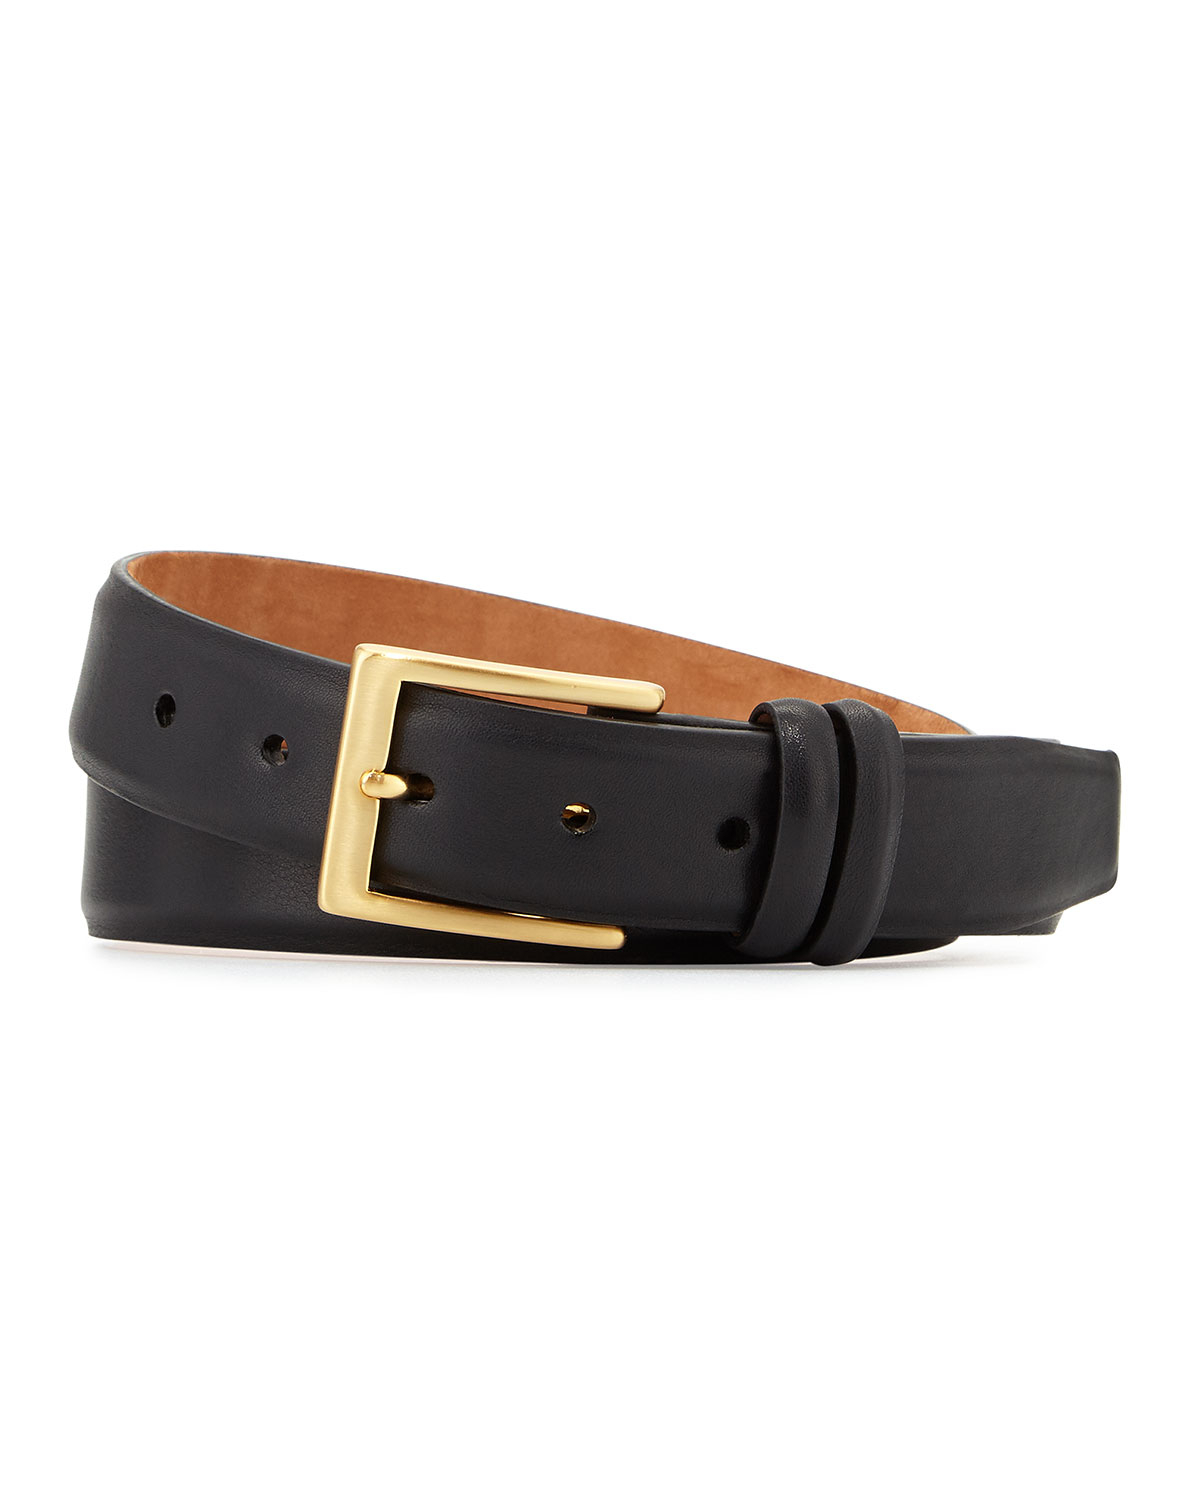 w kleinberg basic leather belt with interchangeable